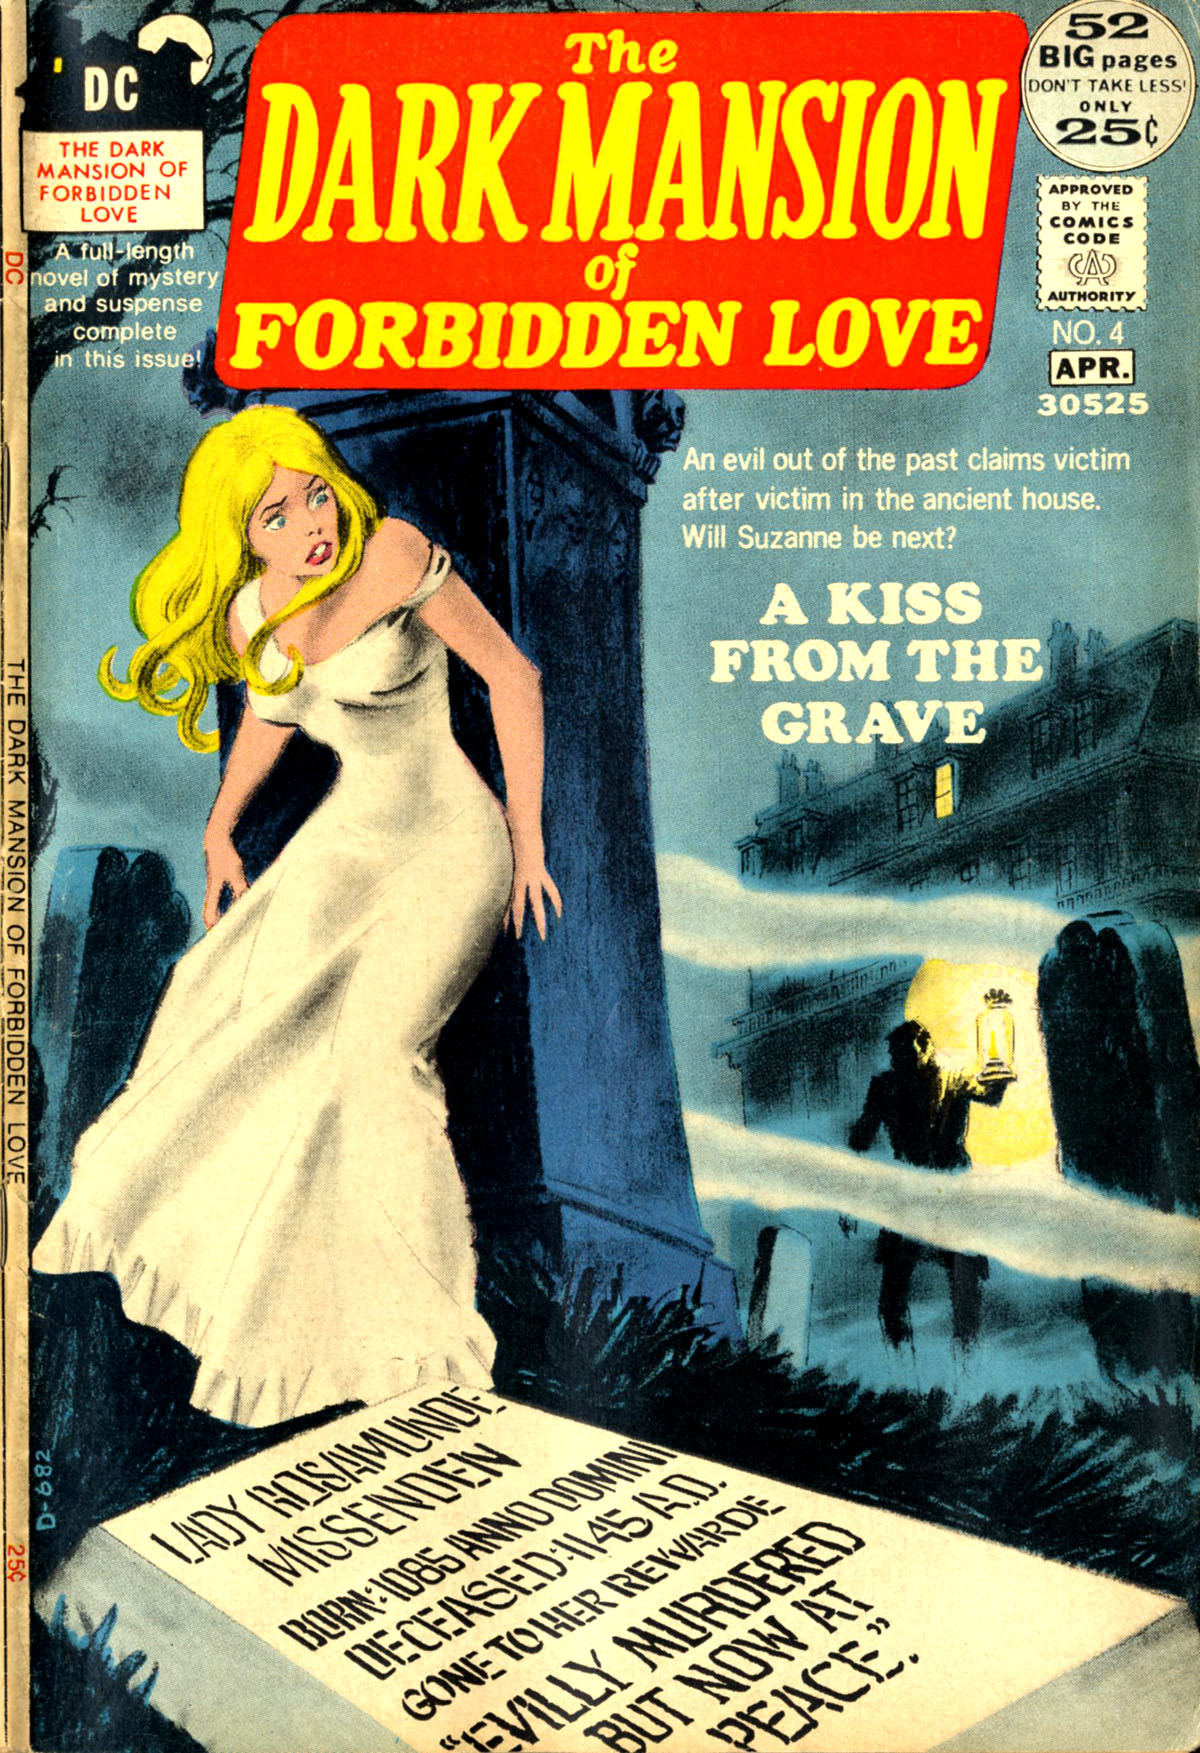 Dark Mansion of Forbidden Love (1971) #4, cover by Nick Cardy.